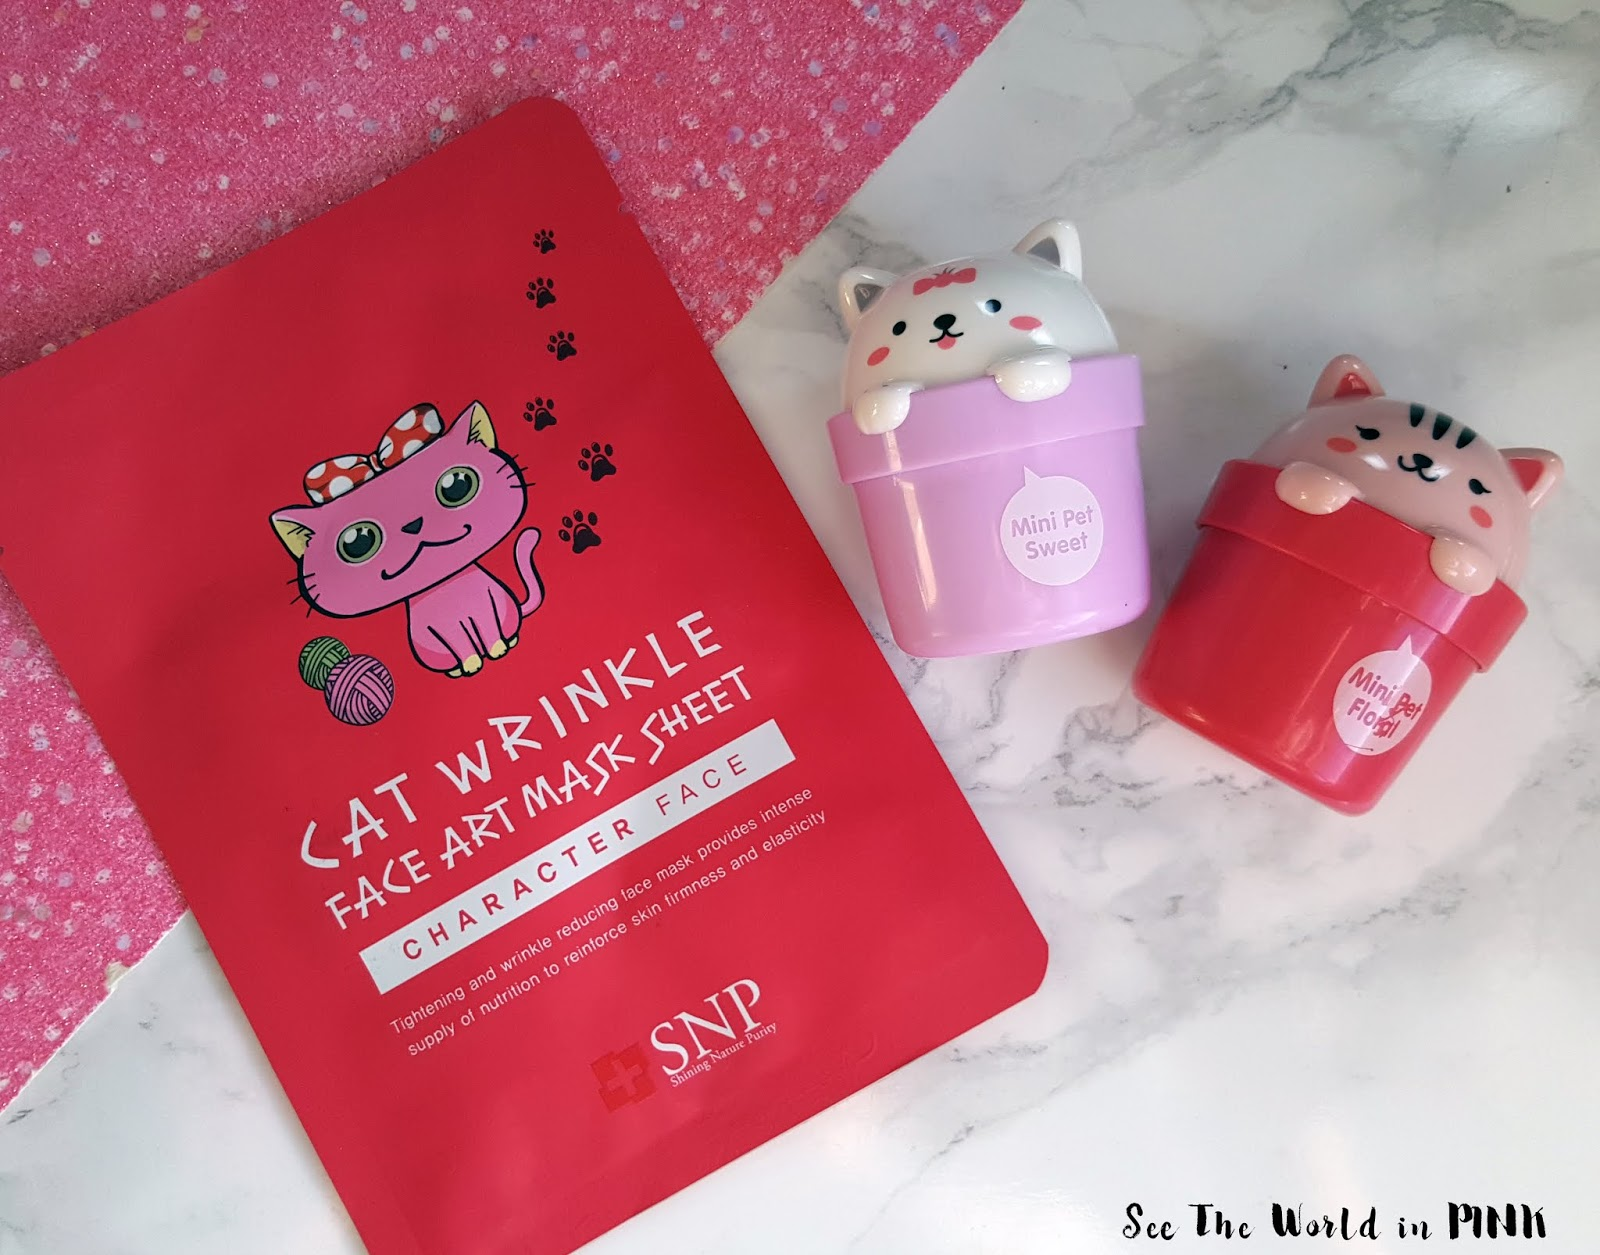 Mask Wednesday - SNP Cat Wrinkle Face Art Mask Sheet Try-on and Review!